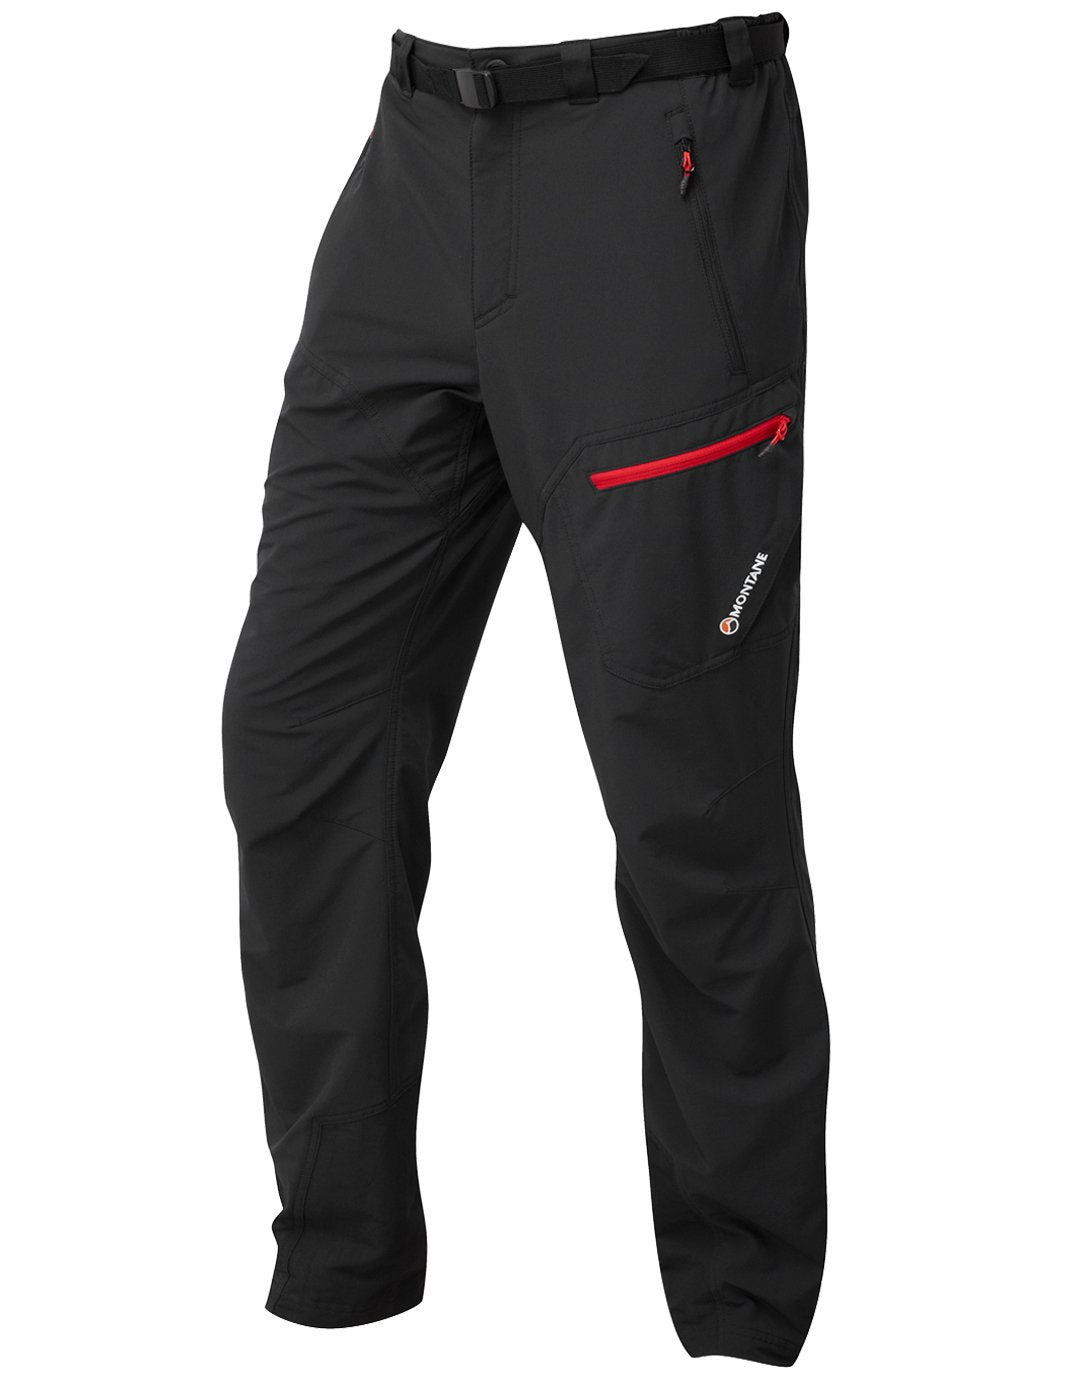 Mens Alpine Trek Pants Regular - Black - Medium Black